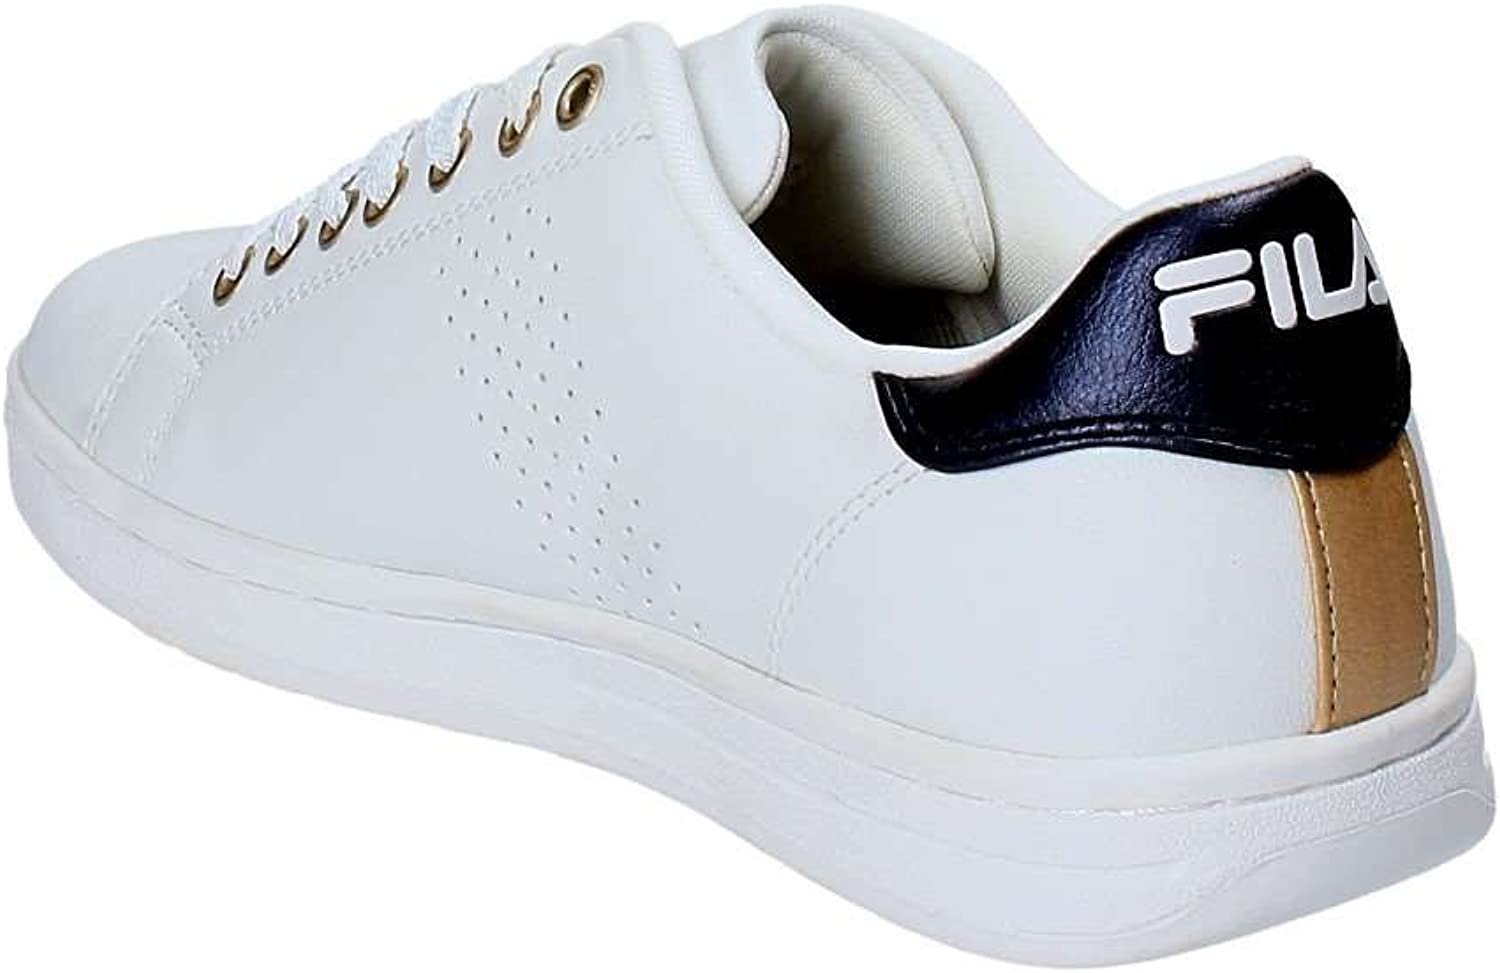 Fila Crosscourt 2 Low WMN 10101851FG, Basket